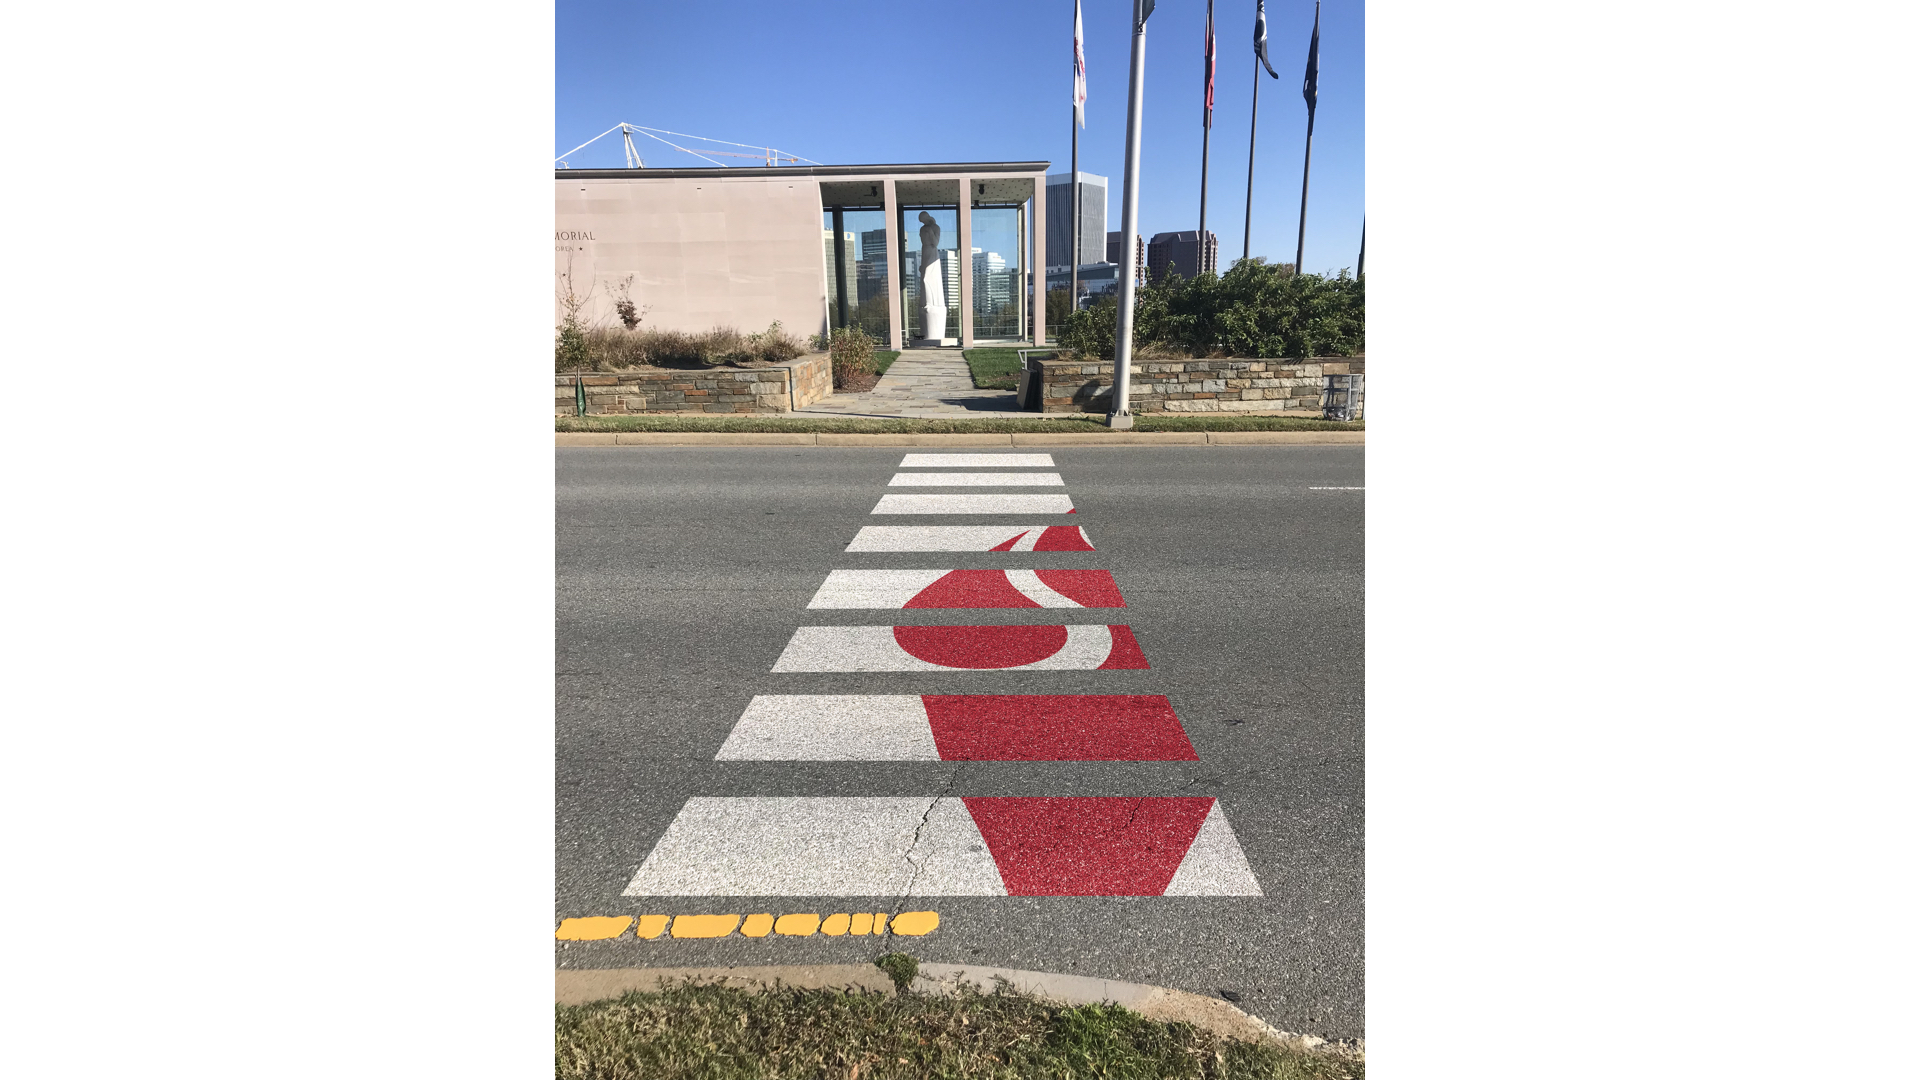 Branded Crosswalk - We recommended adding a branded crosswalk to the very busy intersection in front of the memorial. This was a low-cost execution that promotes pedestrian safety and would be a creative way to put the new Virginia War Memorial & Museum branding on display.